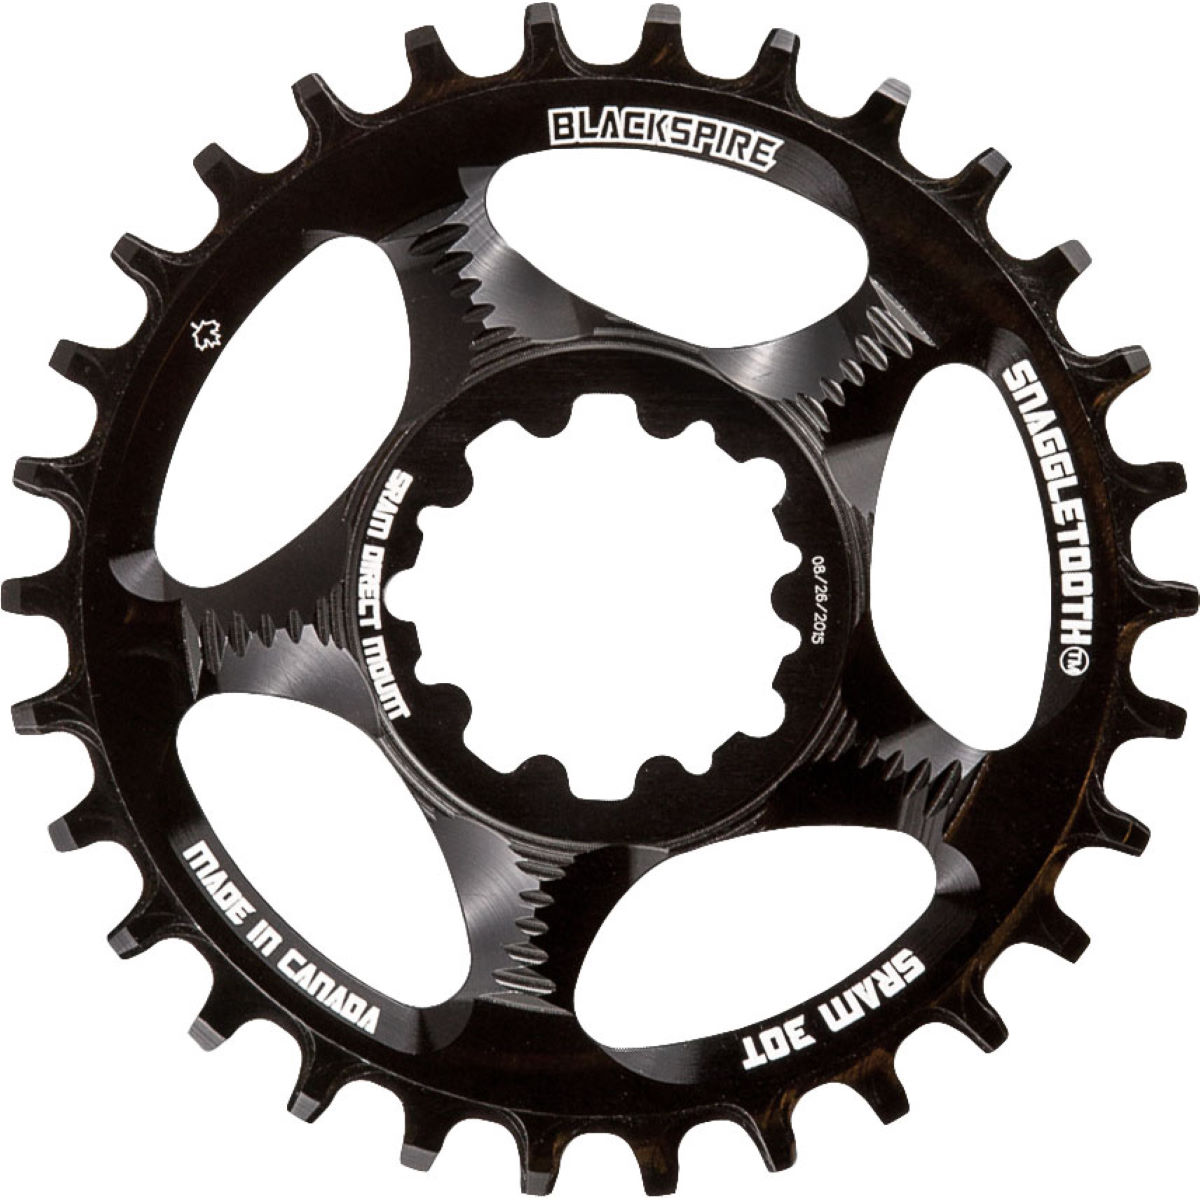 Blackspire Blackspire Snaggletooth Narrow Wide Chainring SRAM   Chain Rings